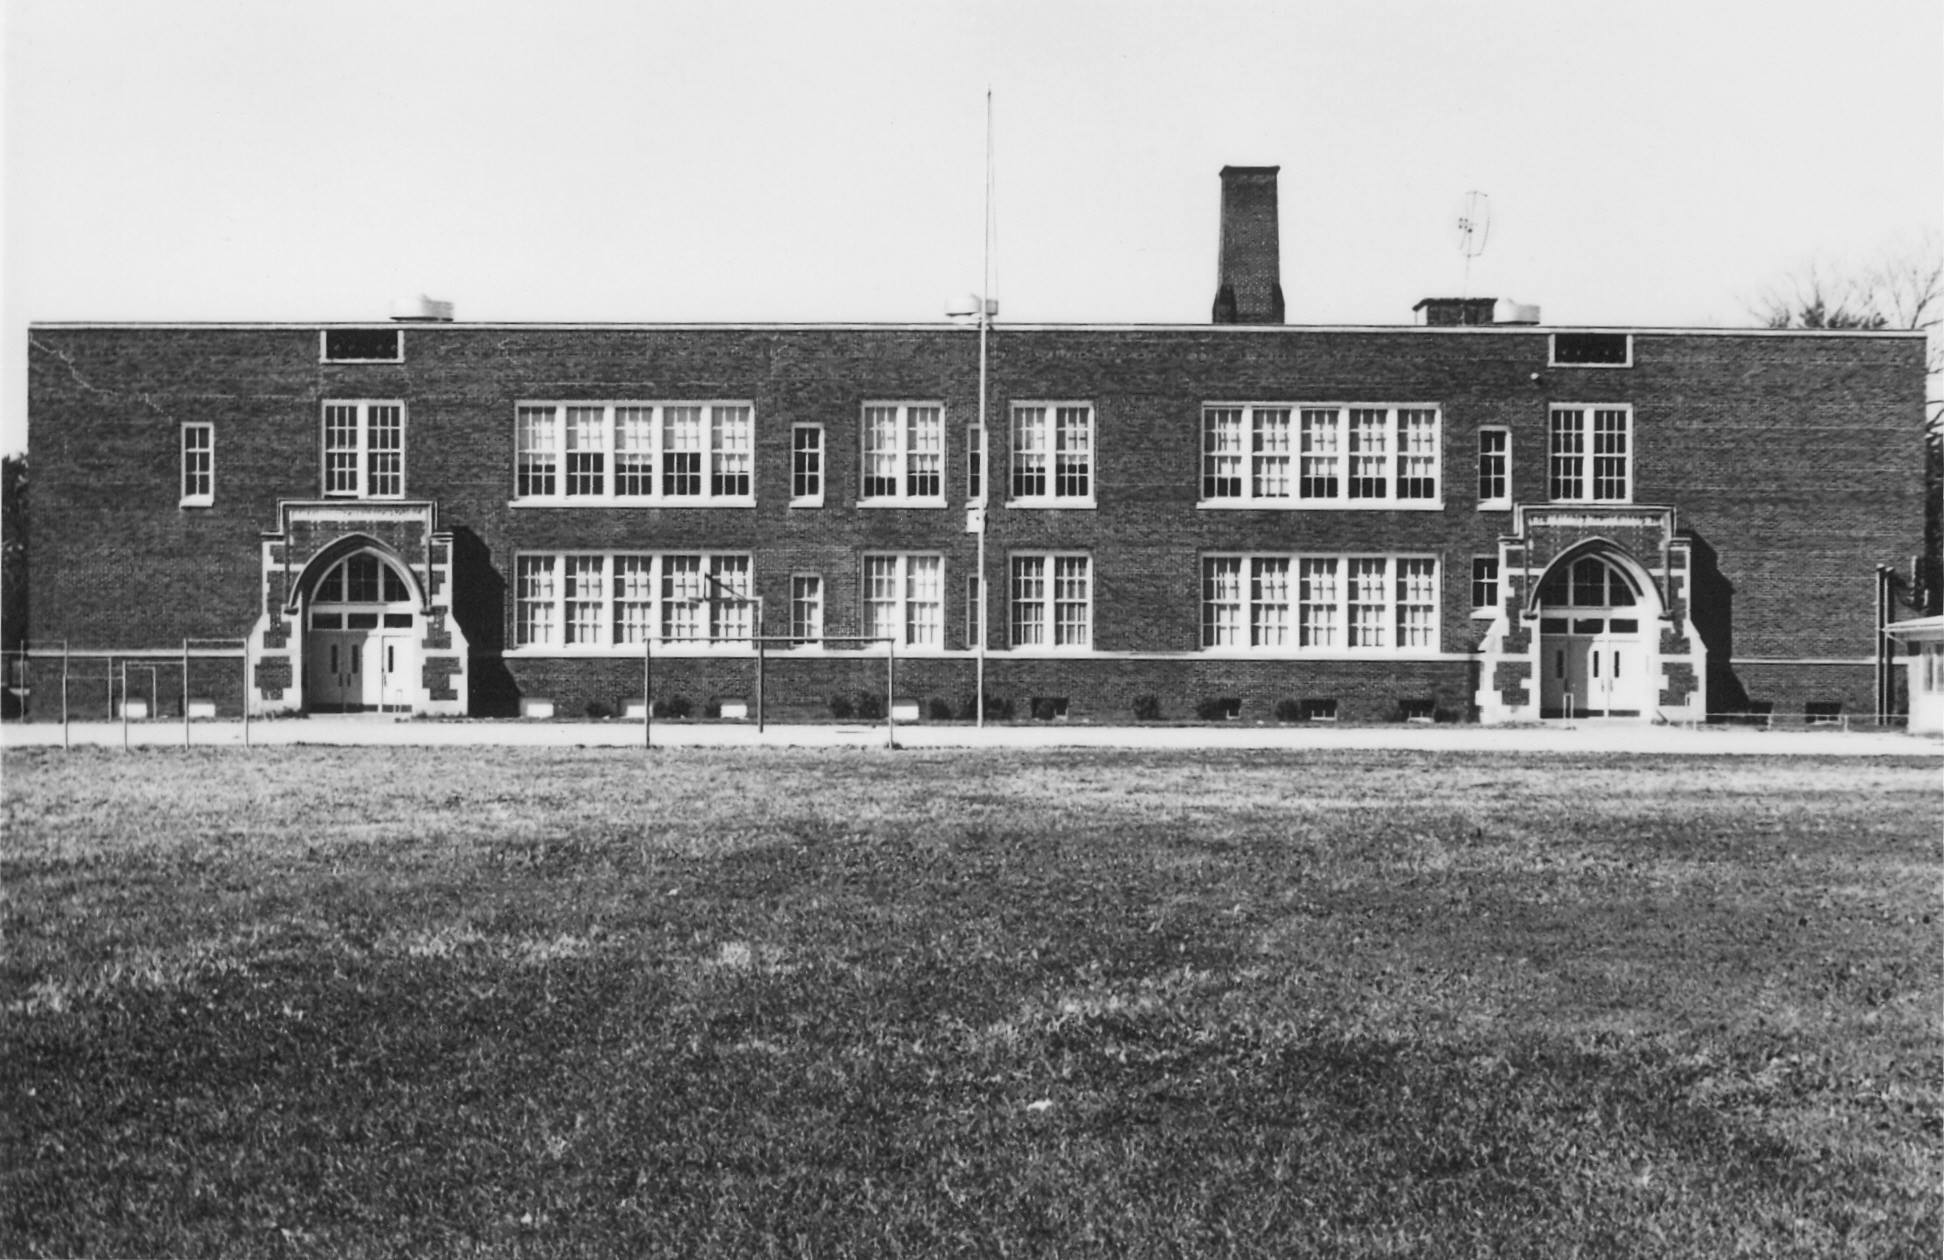 Saratoga School, 25th and Meredith Ave, North Omaha, Nebraska